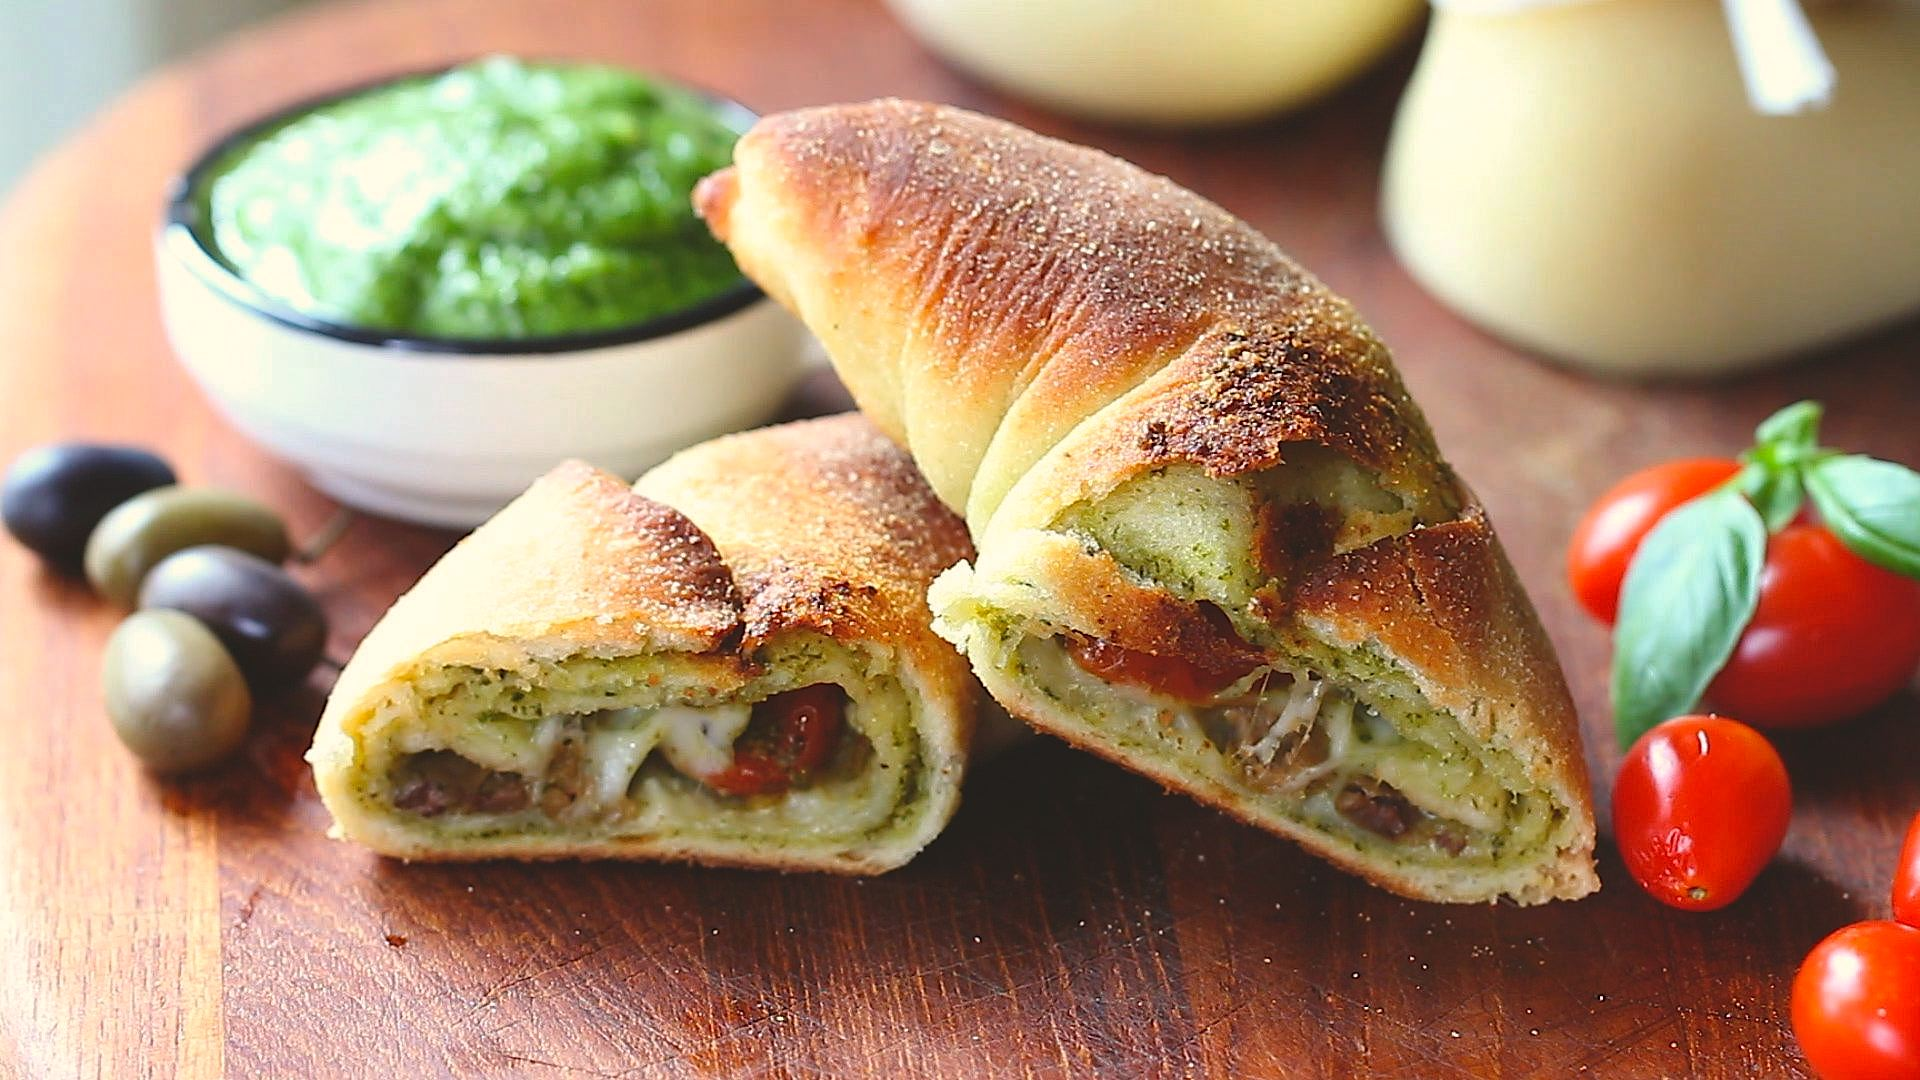 Mini Calzoni With Basil Pesto Provolone Cheese And Cherry